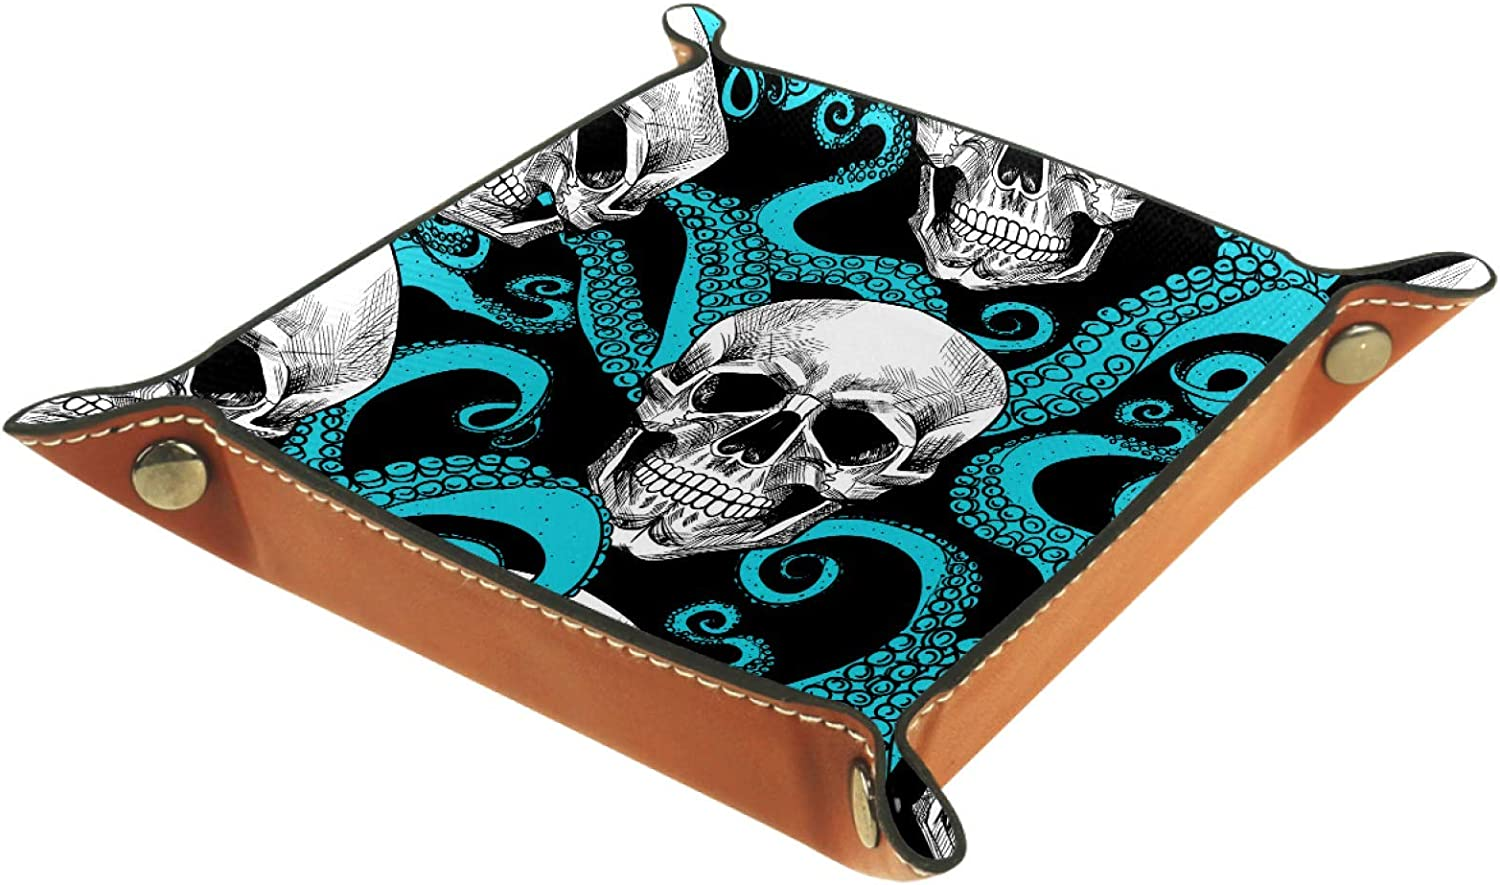 key ZORE/_FINE5 Folding Rolling Dice Games Tray Leather Square Jewelry Trays /& Watch coin candy Storage Box 11.5 cm//4.5 in Skull Blue Octopus Pattern